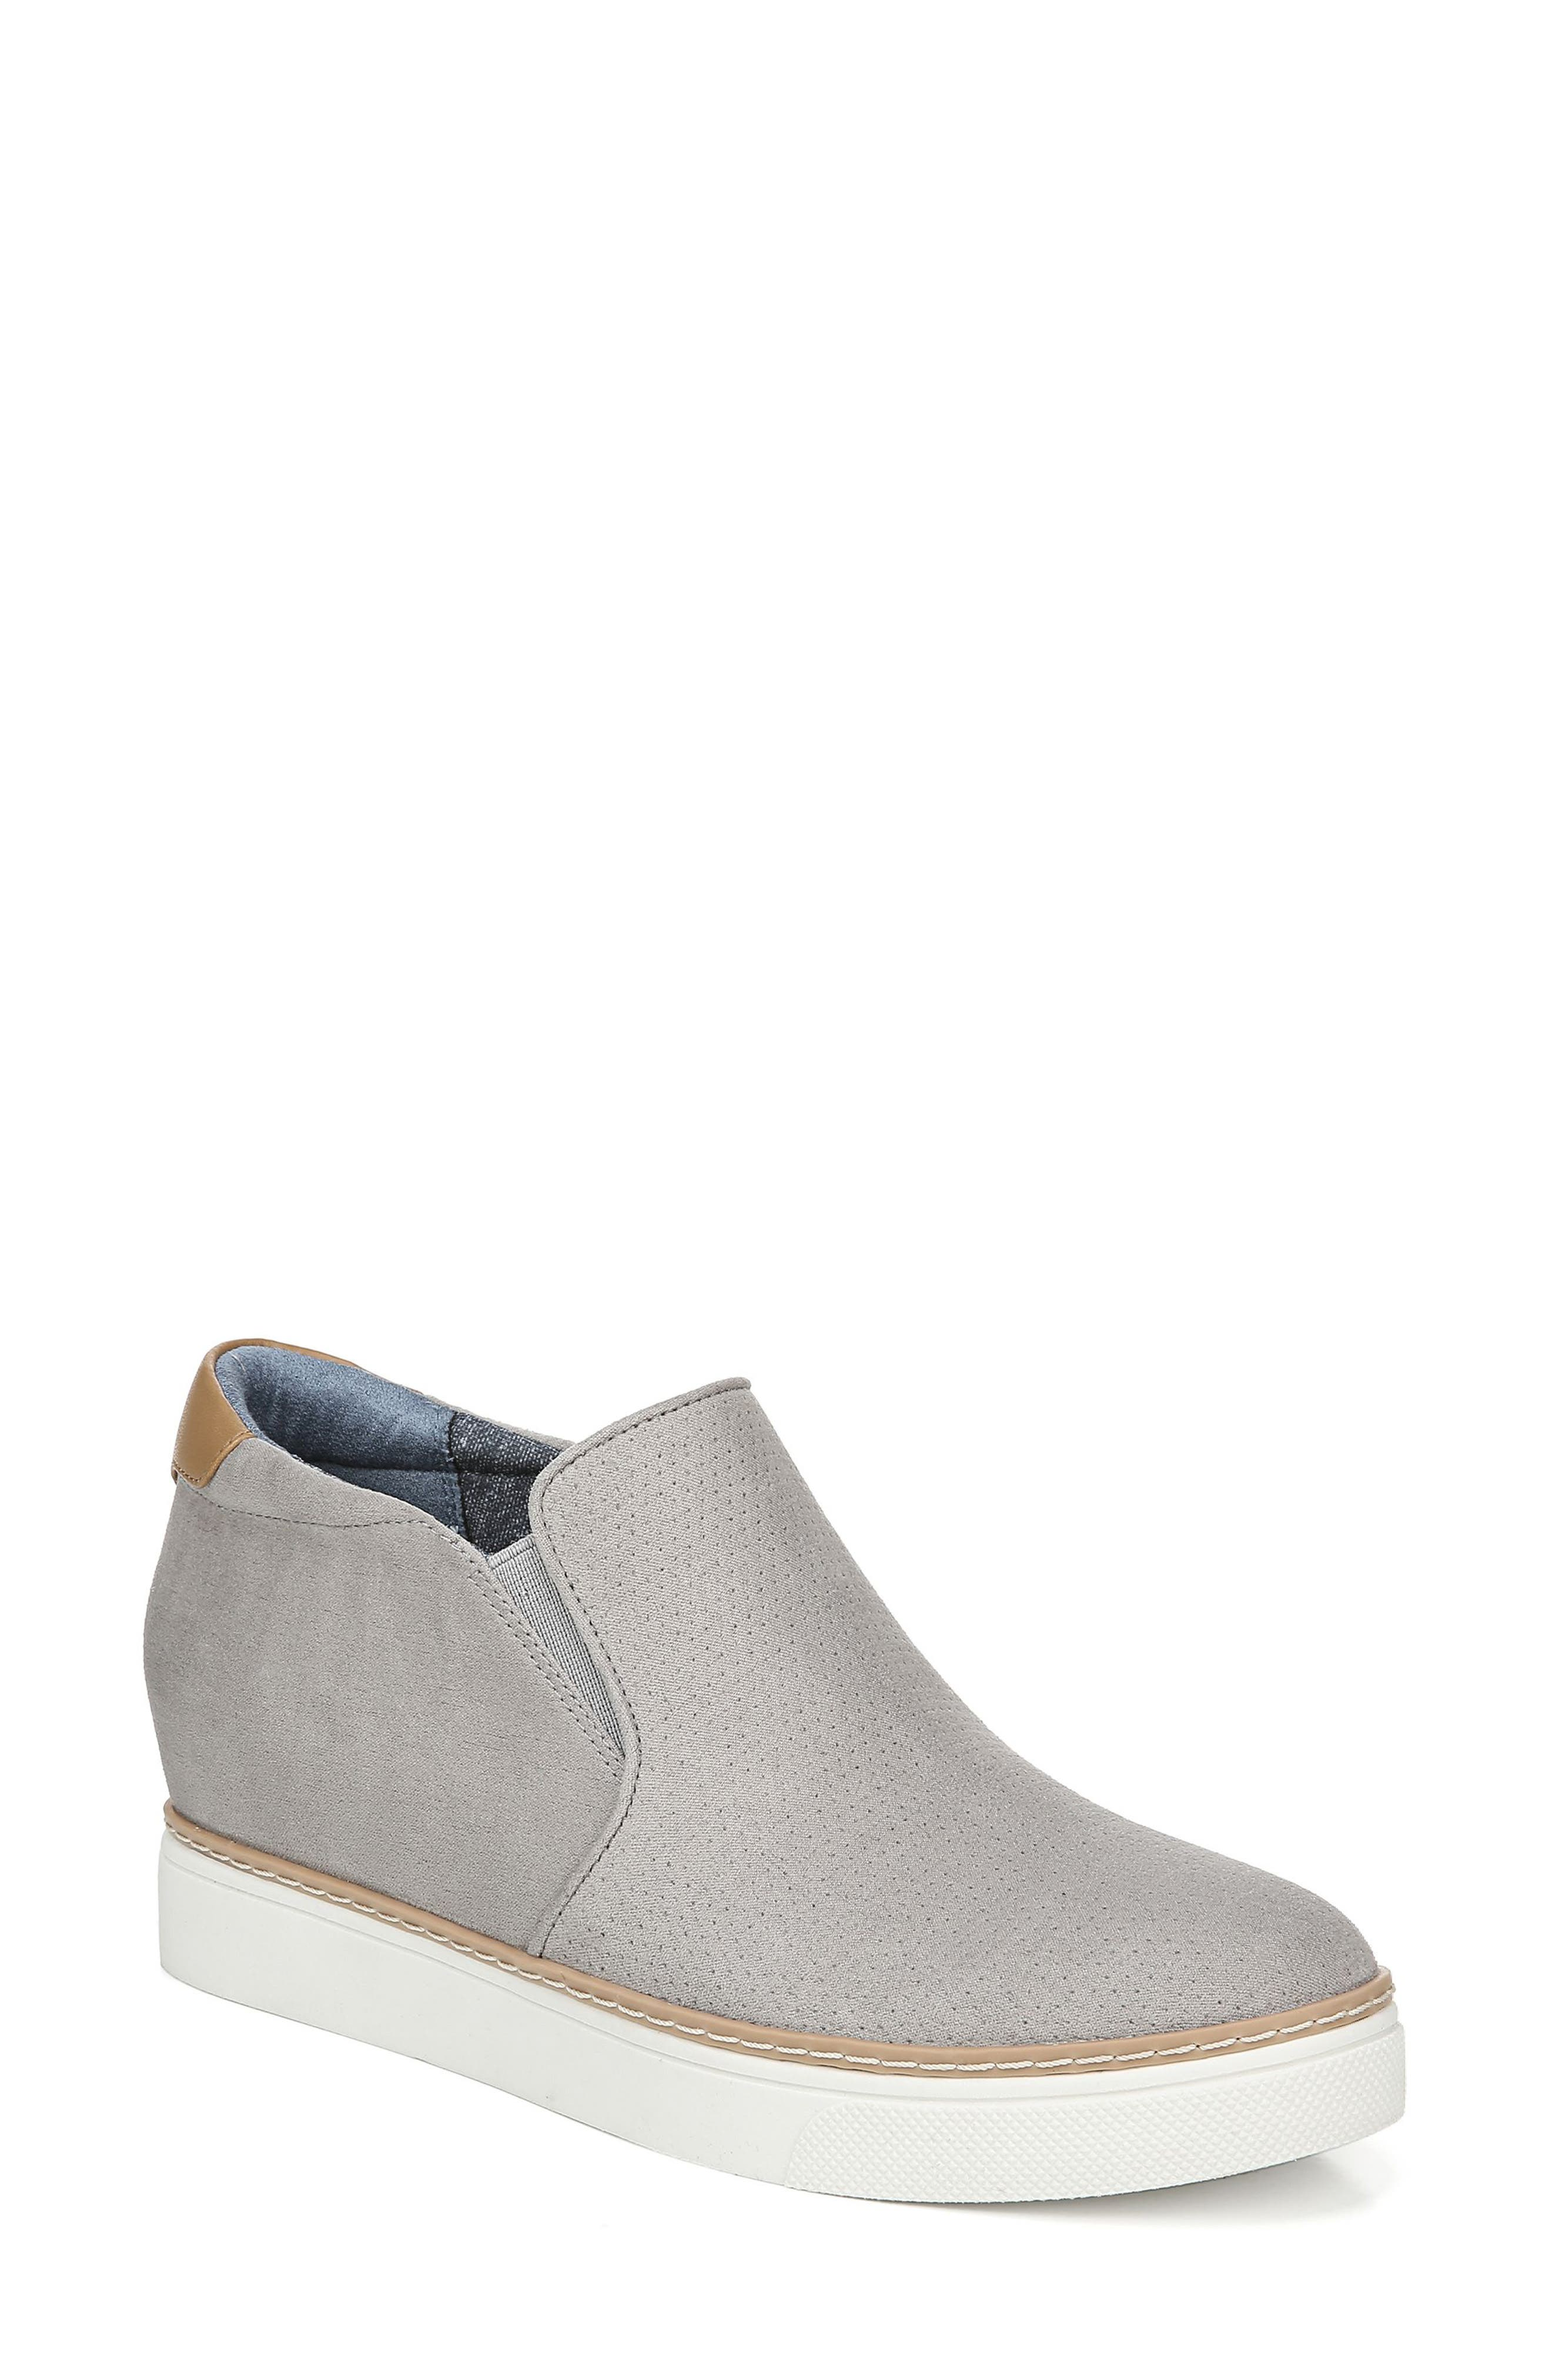 Dr. Scholl's If Only Wedge Bootie (Women)